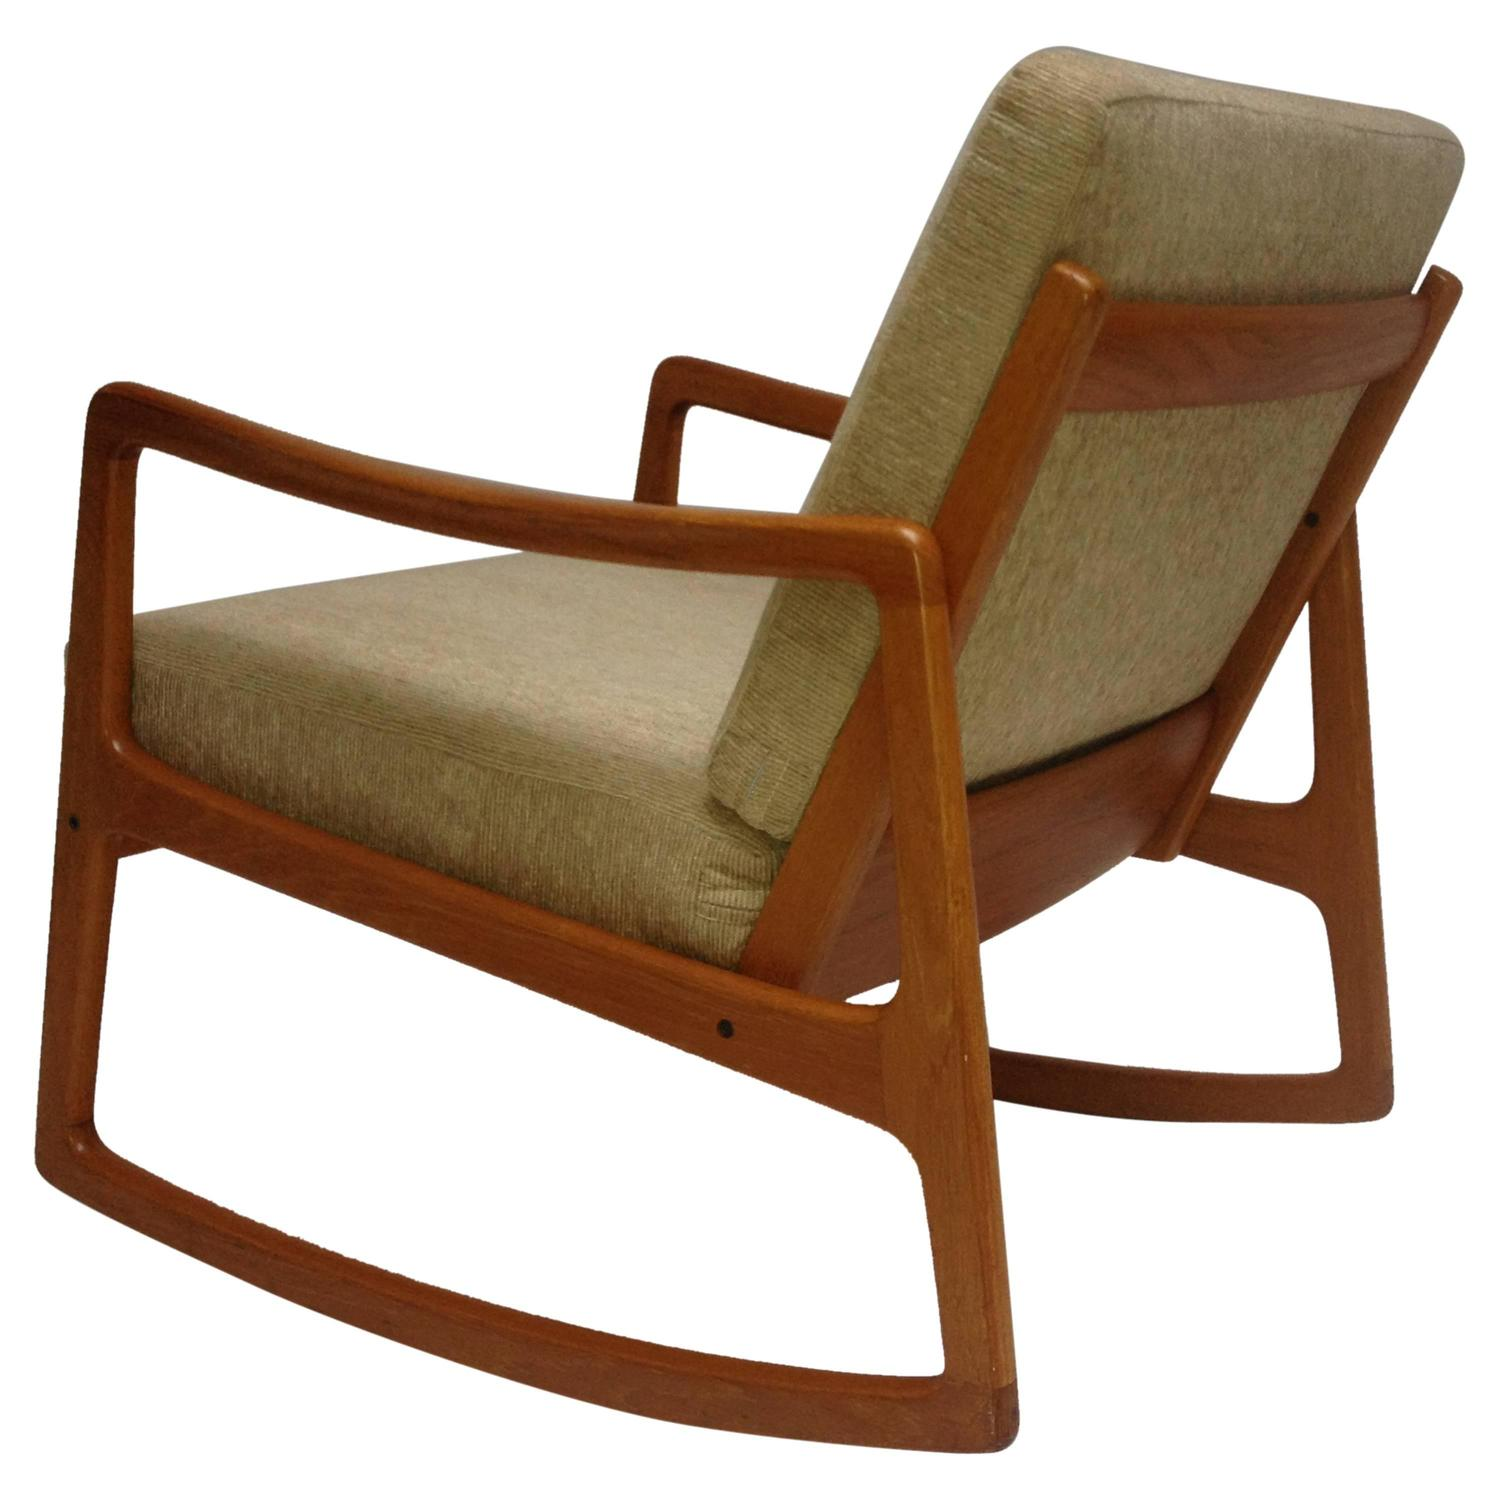 Danish Rocking Chair Danish Teak Rocking Chair By Ole Wanscher For France And